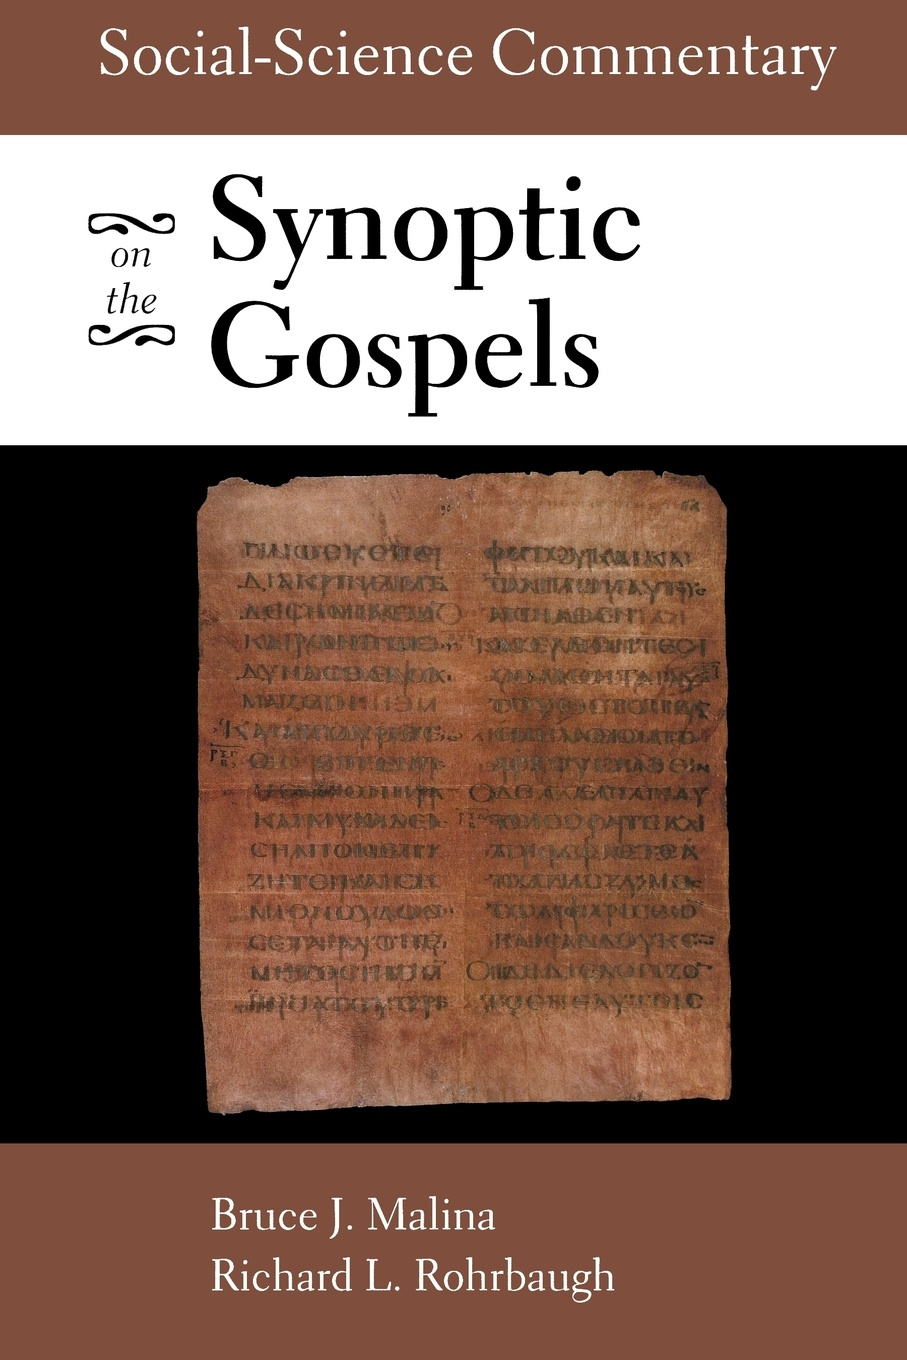 Bruce J. Malina, Richard L. Rohrbaugh Social-Science Commentary on the Synoptic Gospels bruce j malina richard l rohrbaugh social science commentary on the gospel of john